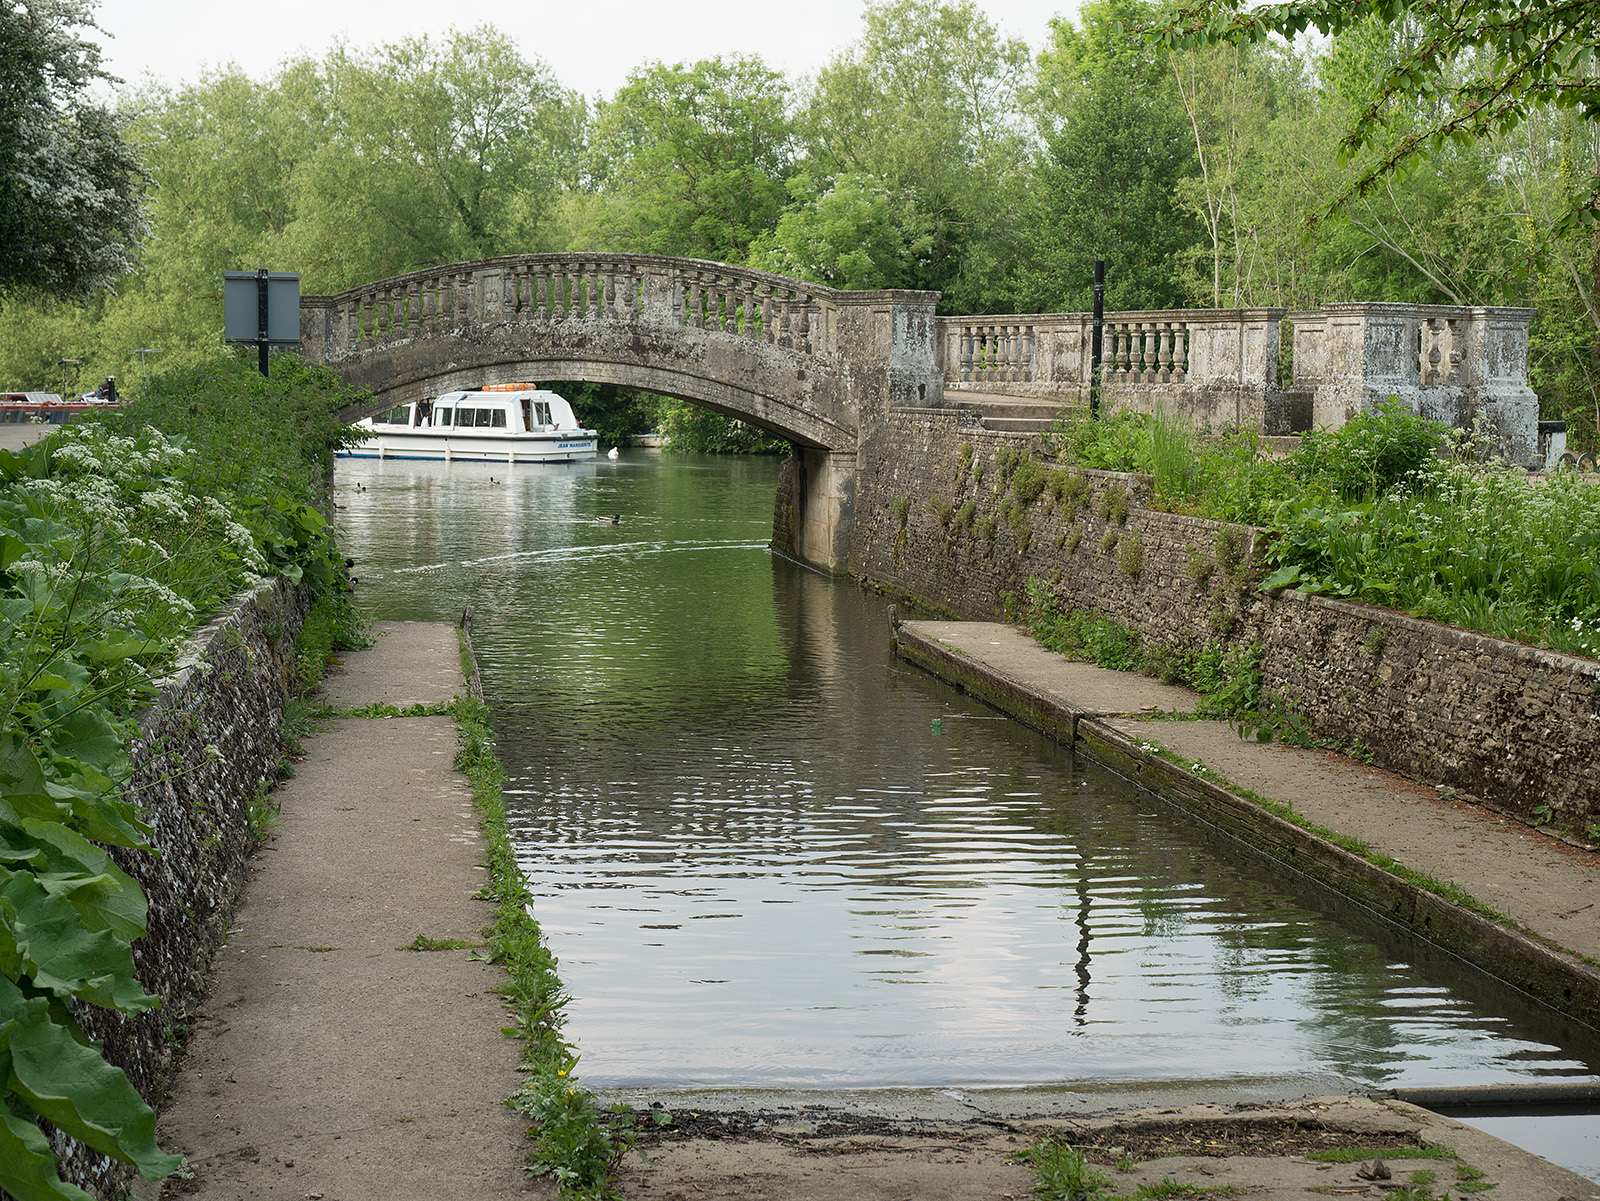 Bridge across slipway at Iffley lock